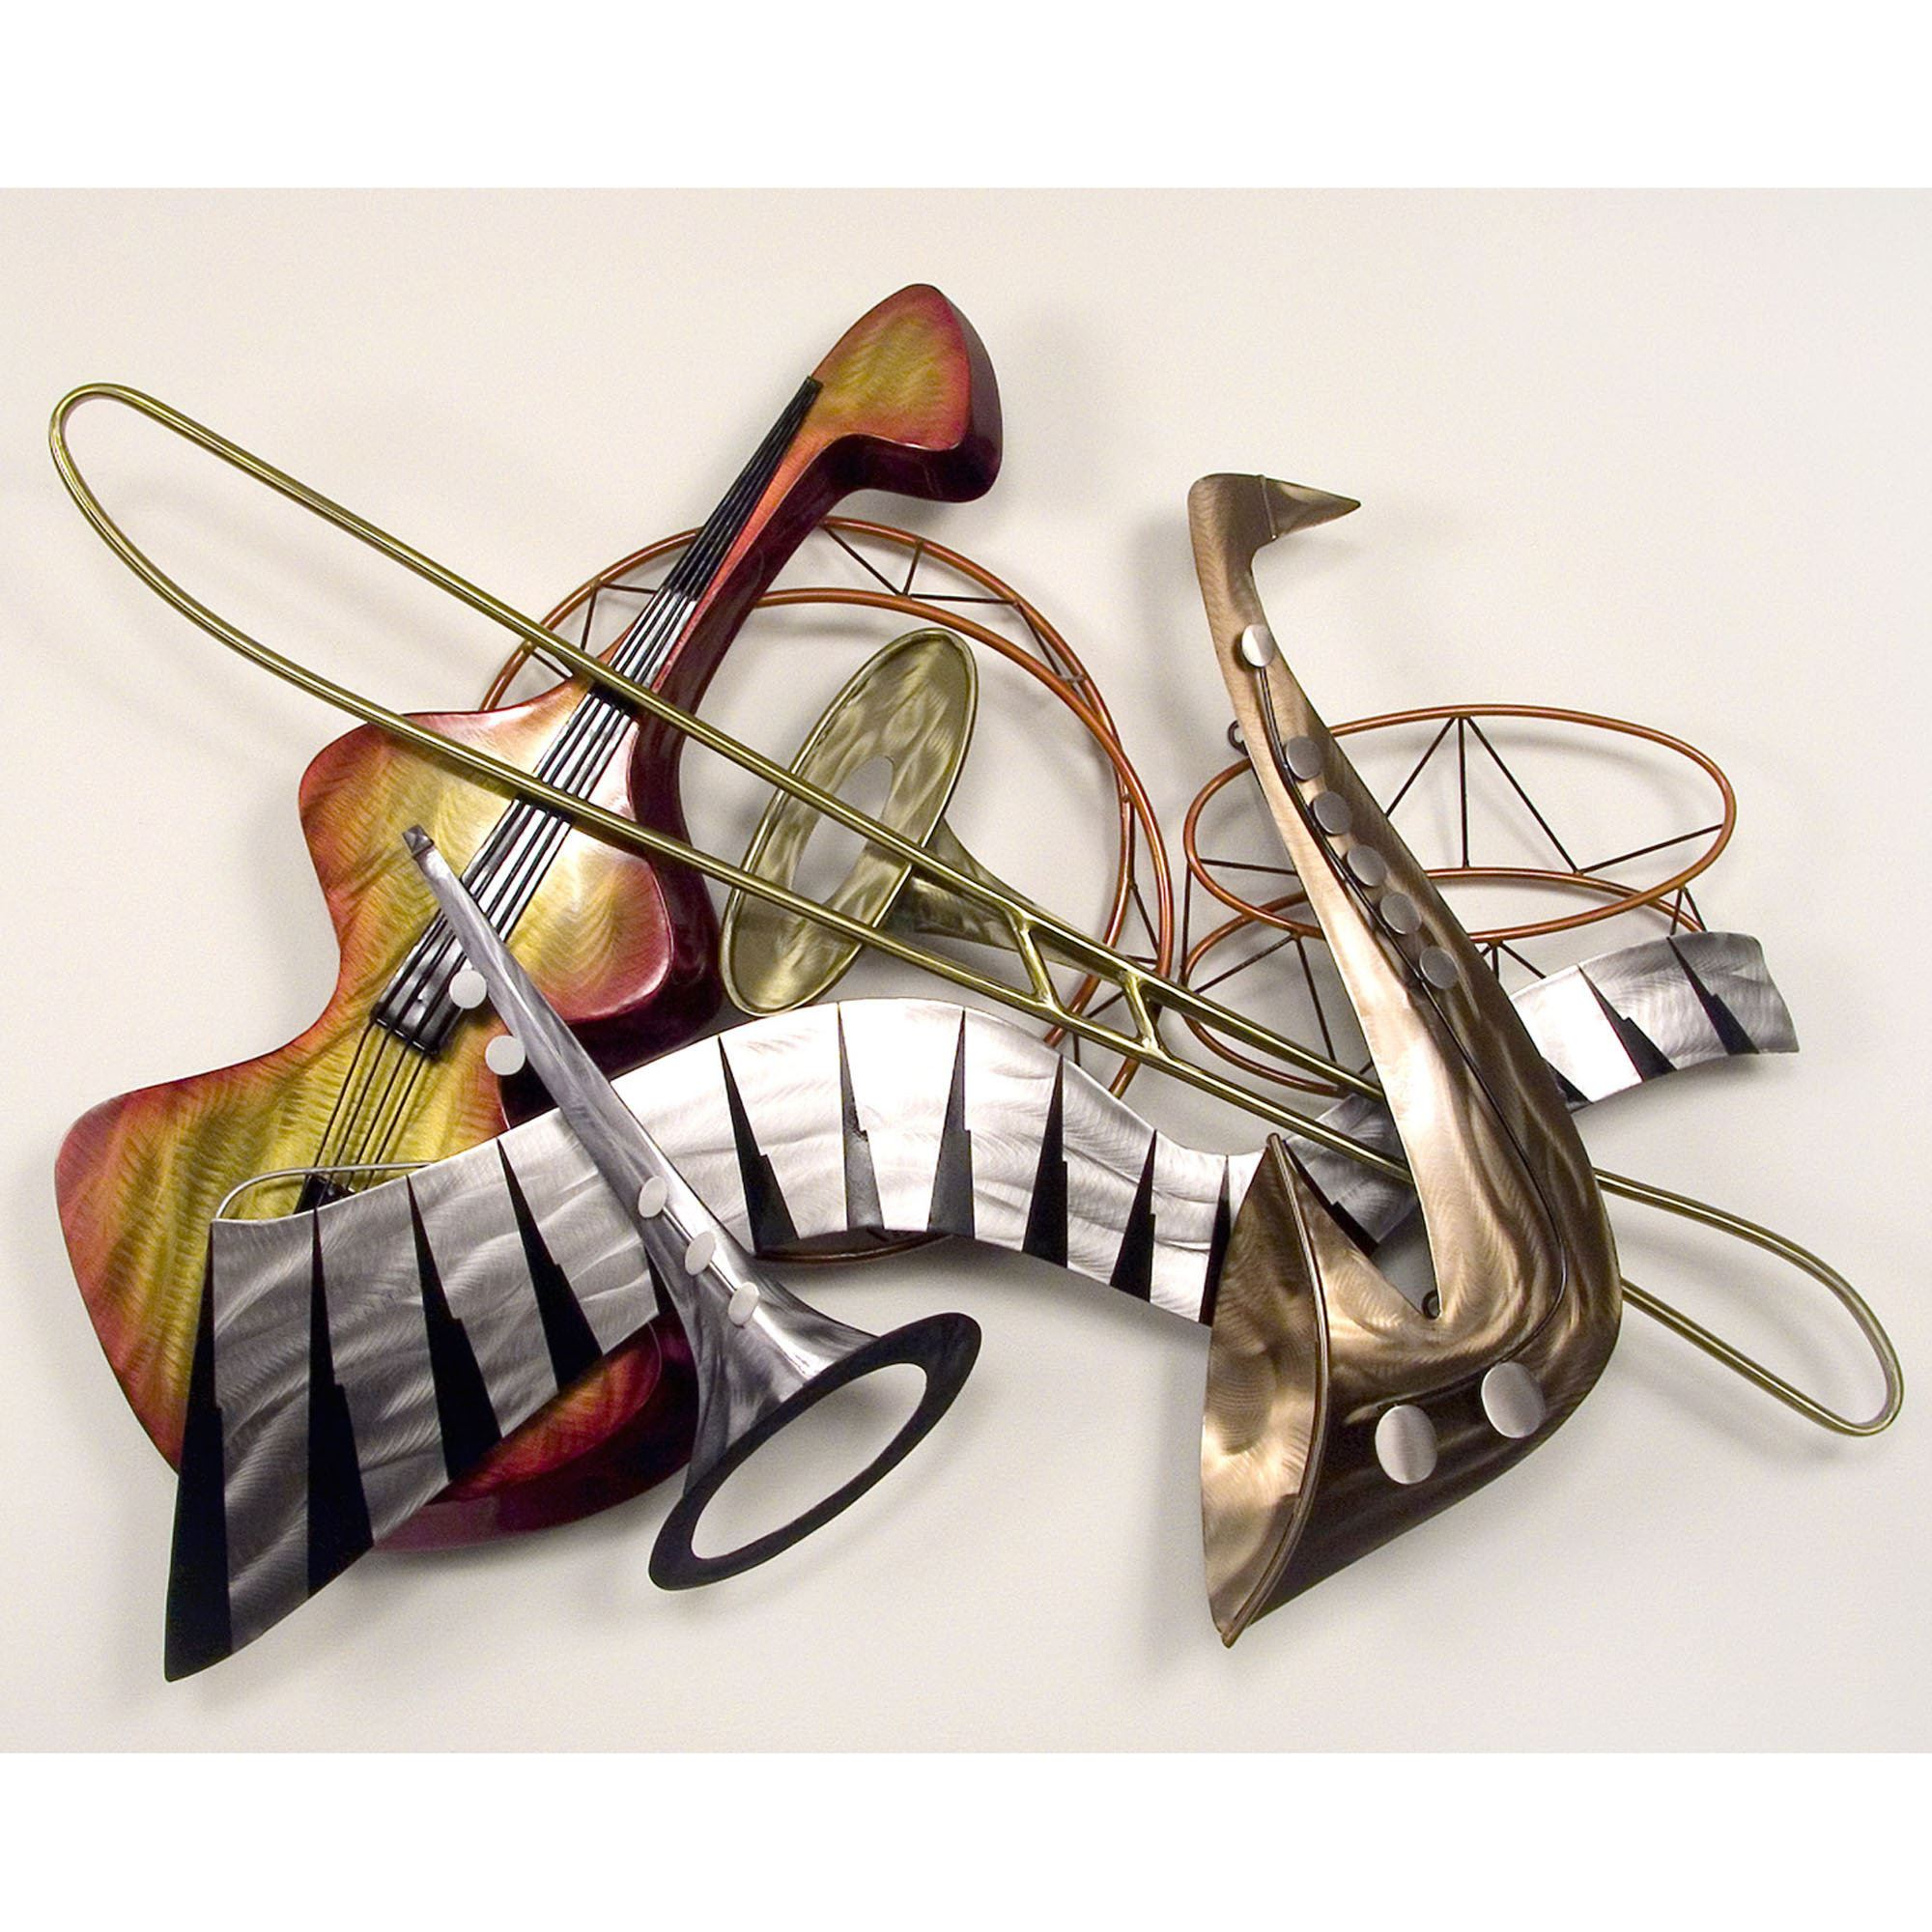 cool jazz steel wall sculpture. Black Bedroom Furniture Sets. Home Design Ideas